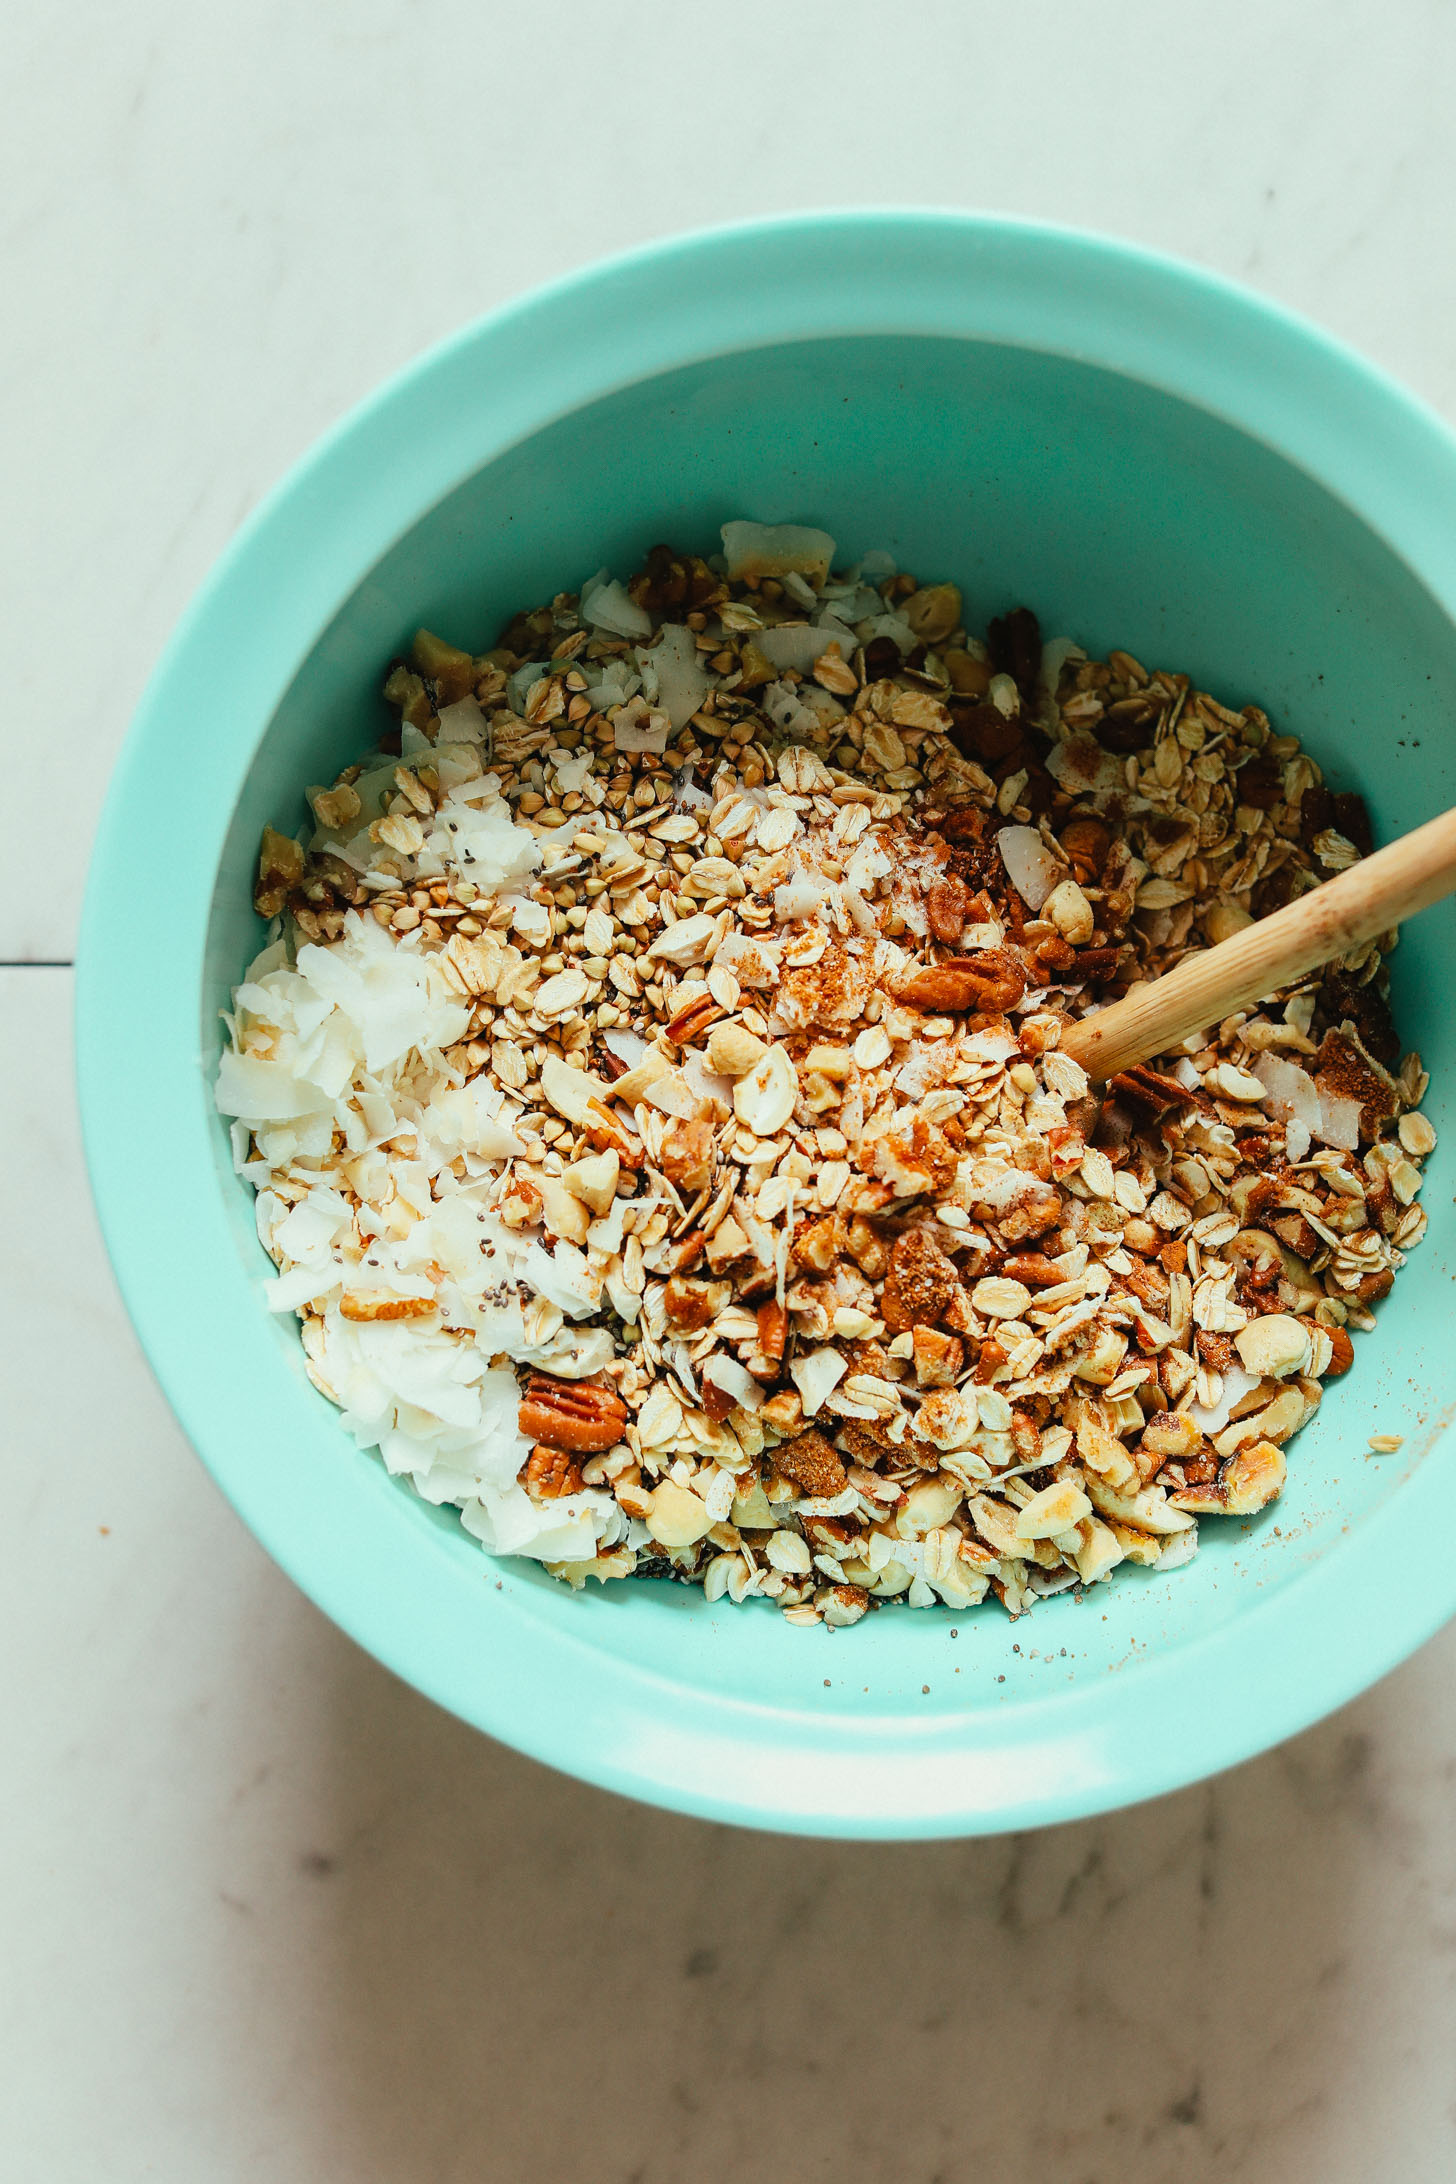 Stirring together dry ingredients for our Easy Buckwheat Granola recipe